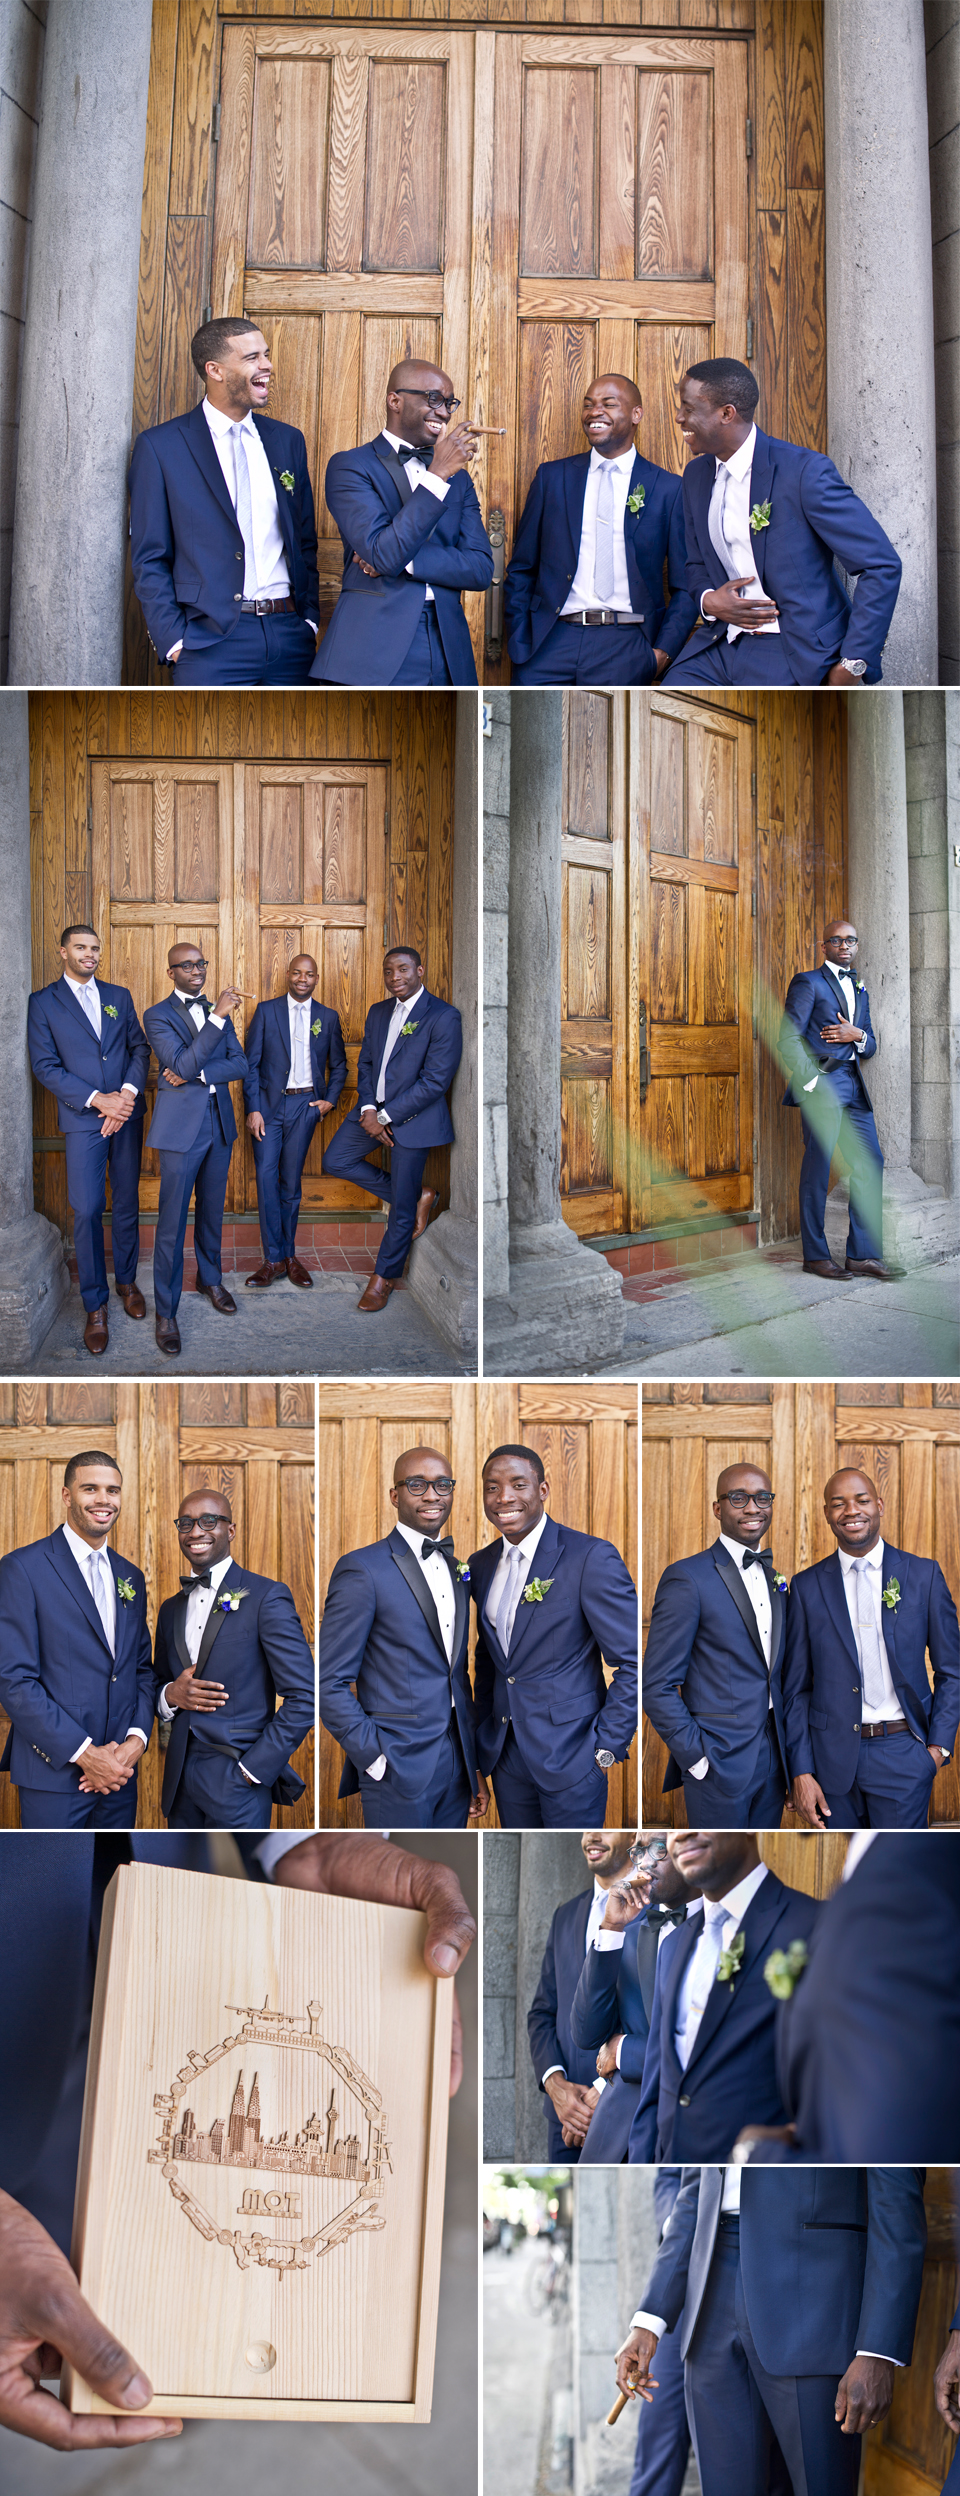 Montreal Wedding Photographer | Groomsmen | Chateau St. Ambroise | Montreal Quebec | LMP Photography and Videography